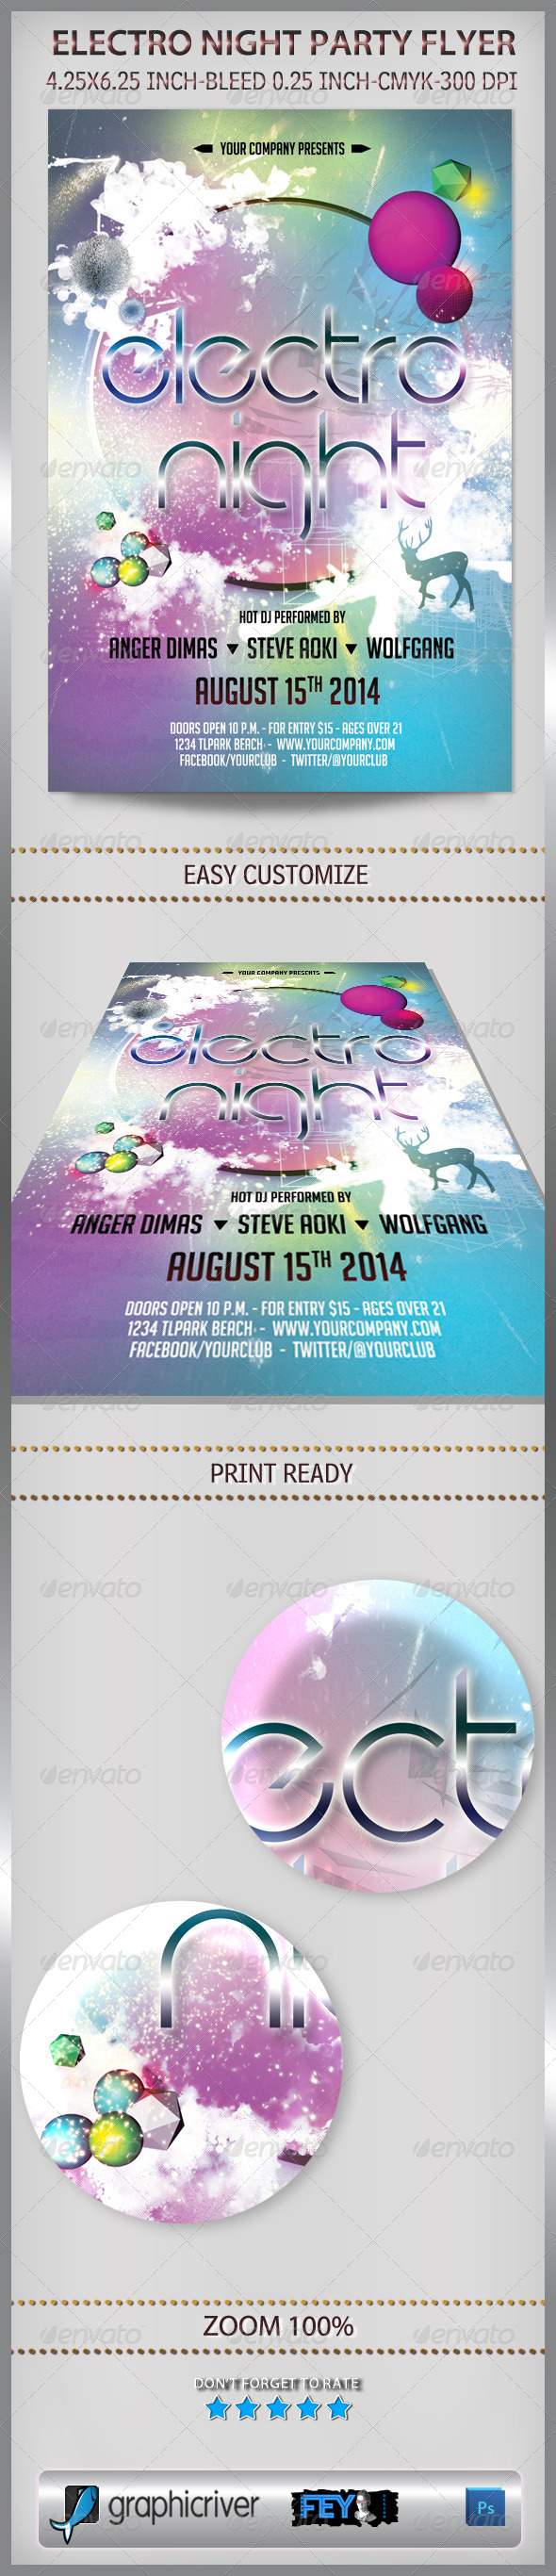 Electro Night Party Flyer - Events Flyers